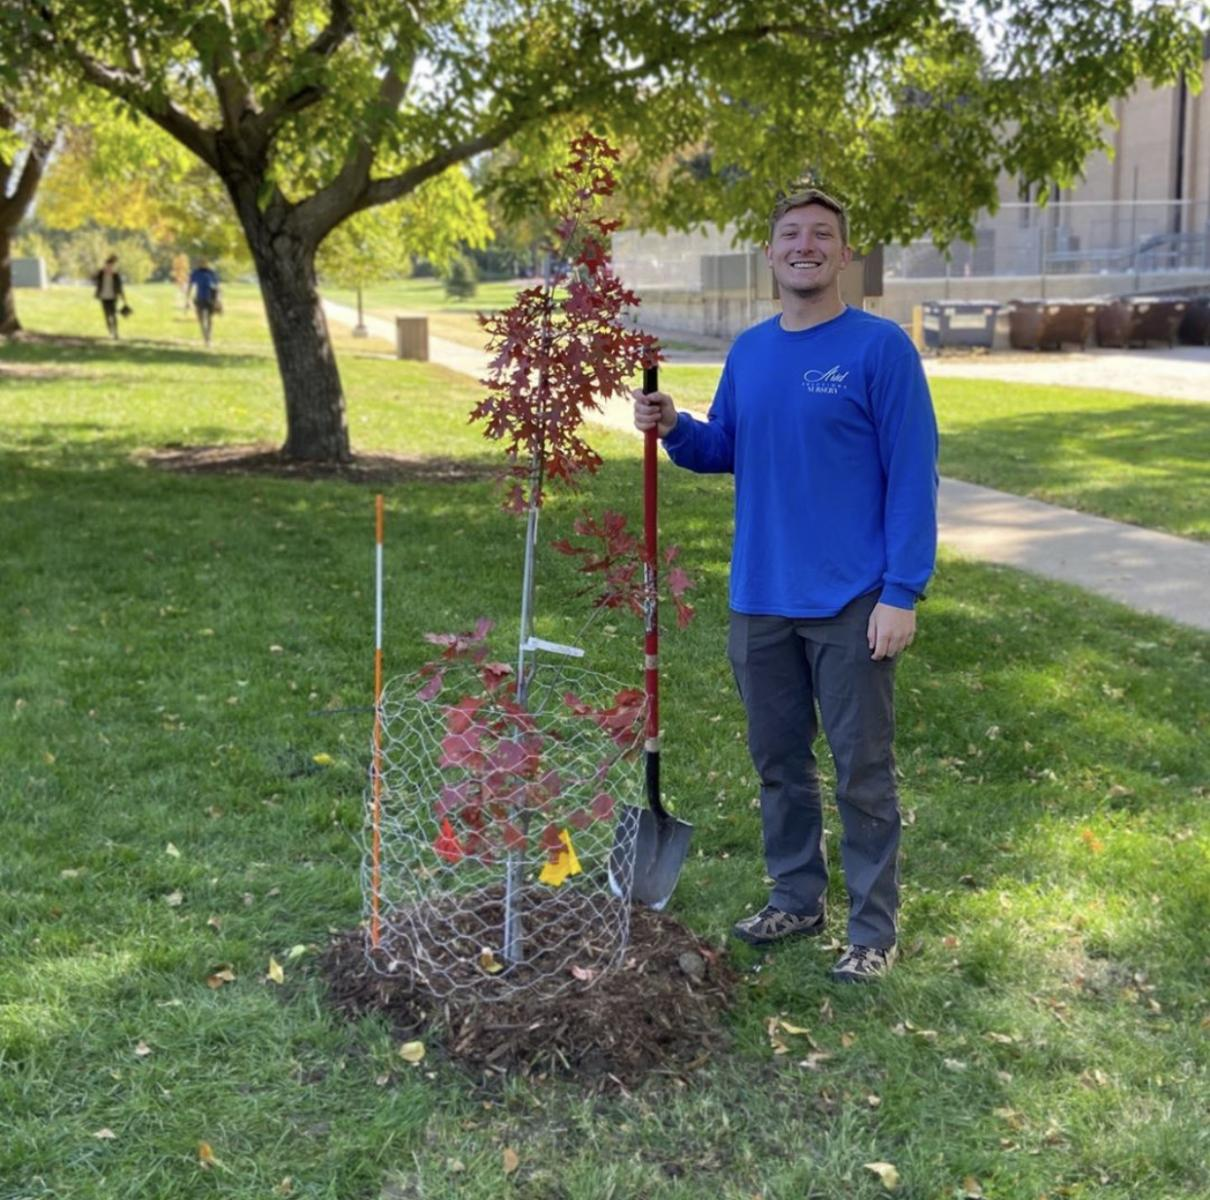 Students stands near freshly planted maple tree for the University of Nebraska's 150th year